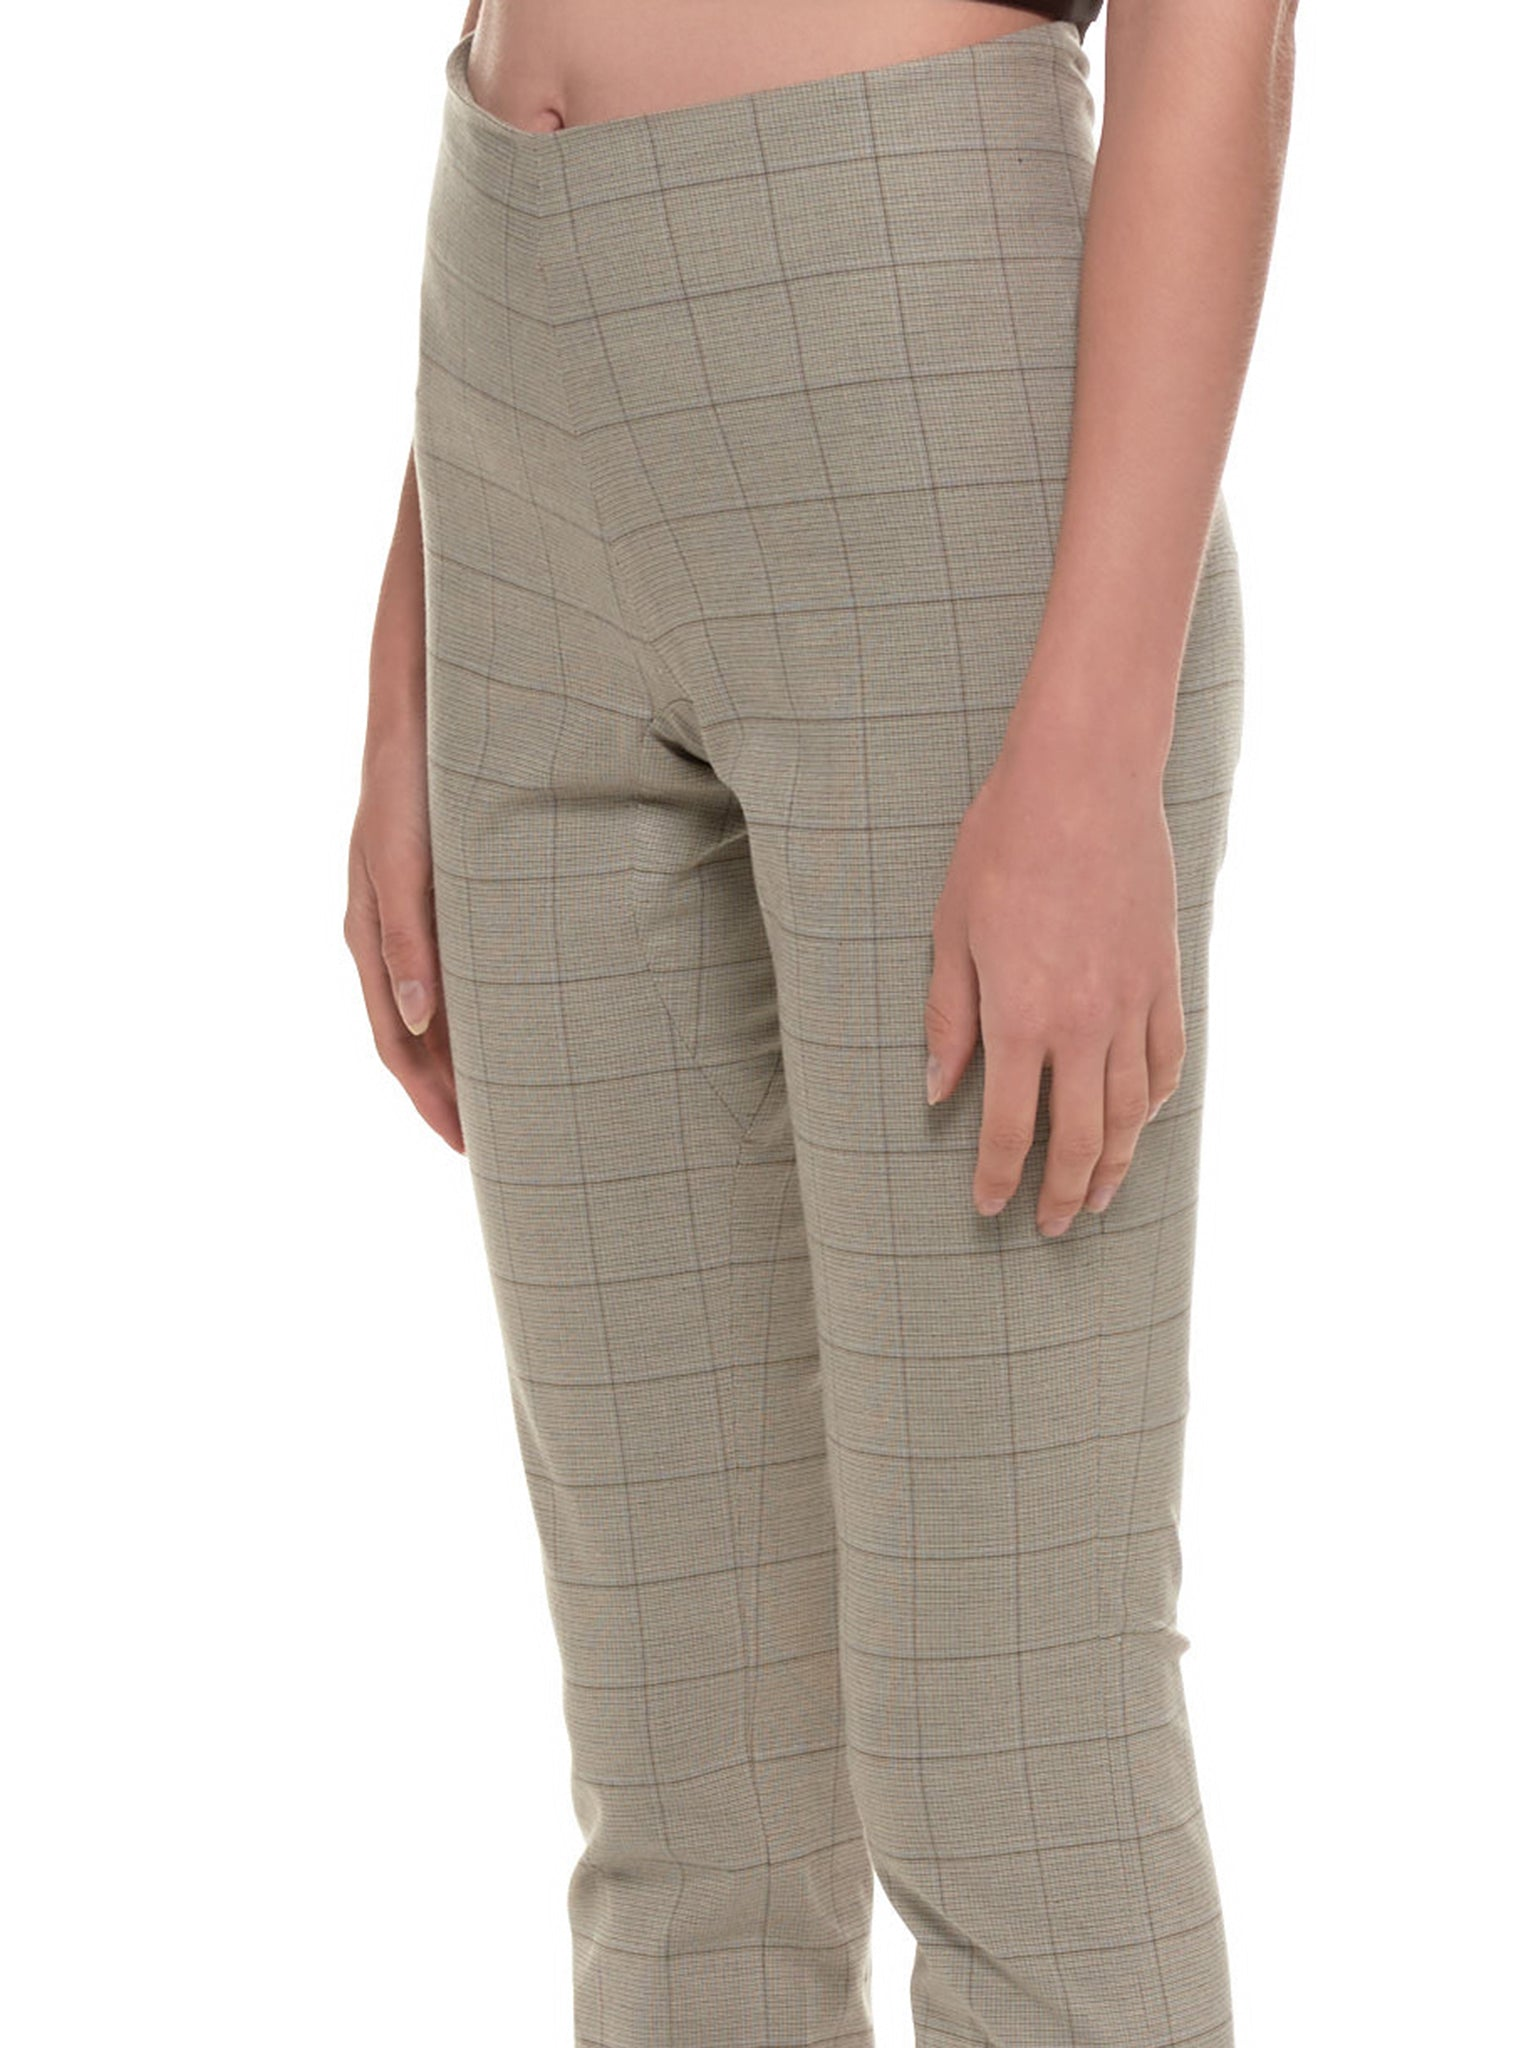 Charlotte Knowles Trousers | H.Lorenzo - detail 1